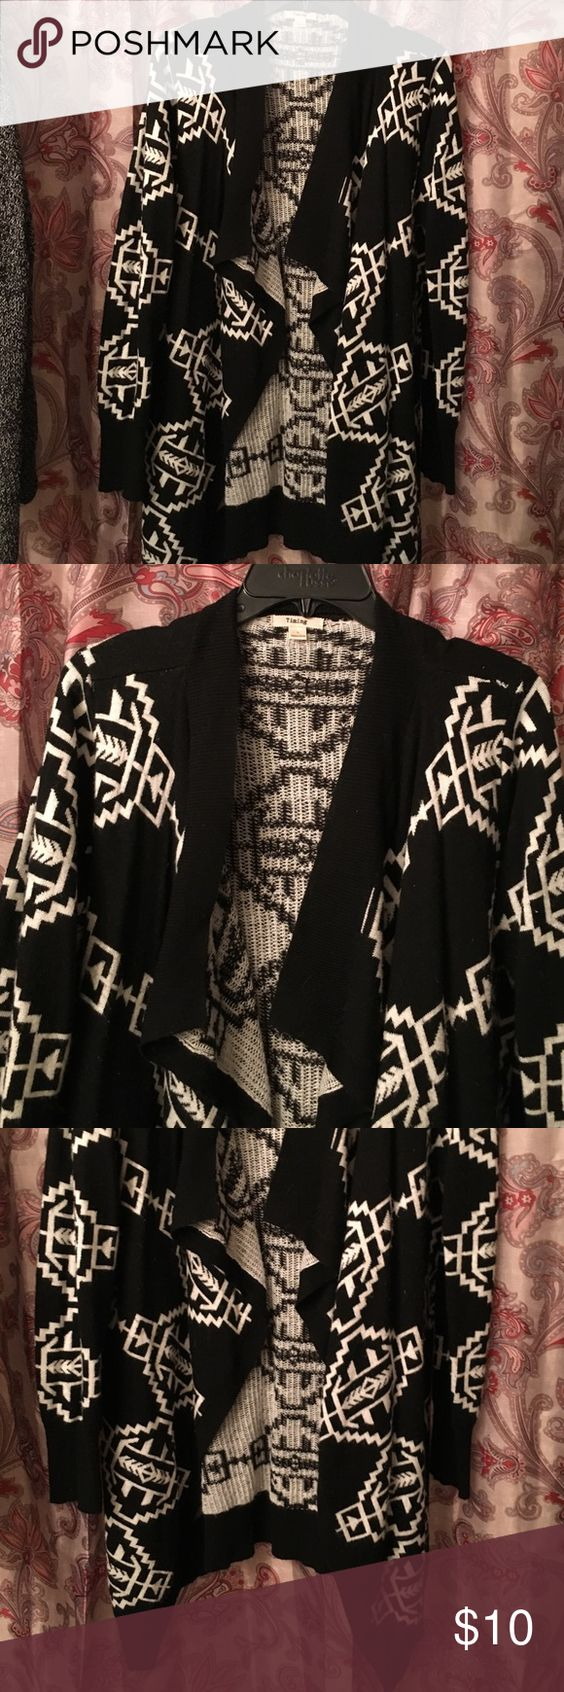 Aztec open cardigan. Size L. Aztec open cardigan. Size L. Worn slightly in under arm area. Other than that, great shape. Nice shrug for fall. Timing Sweaters Cardigans